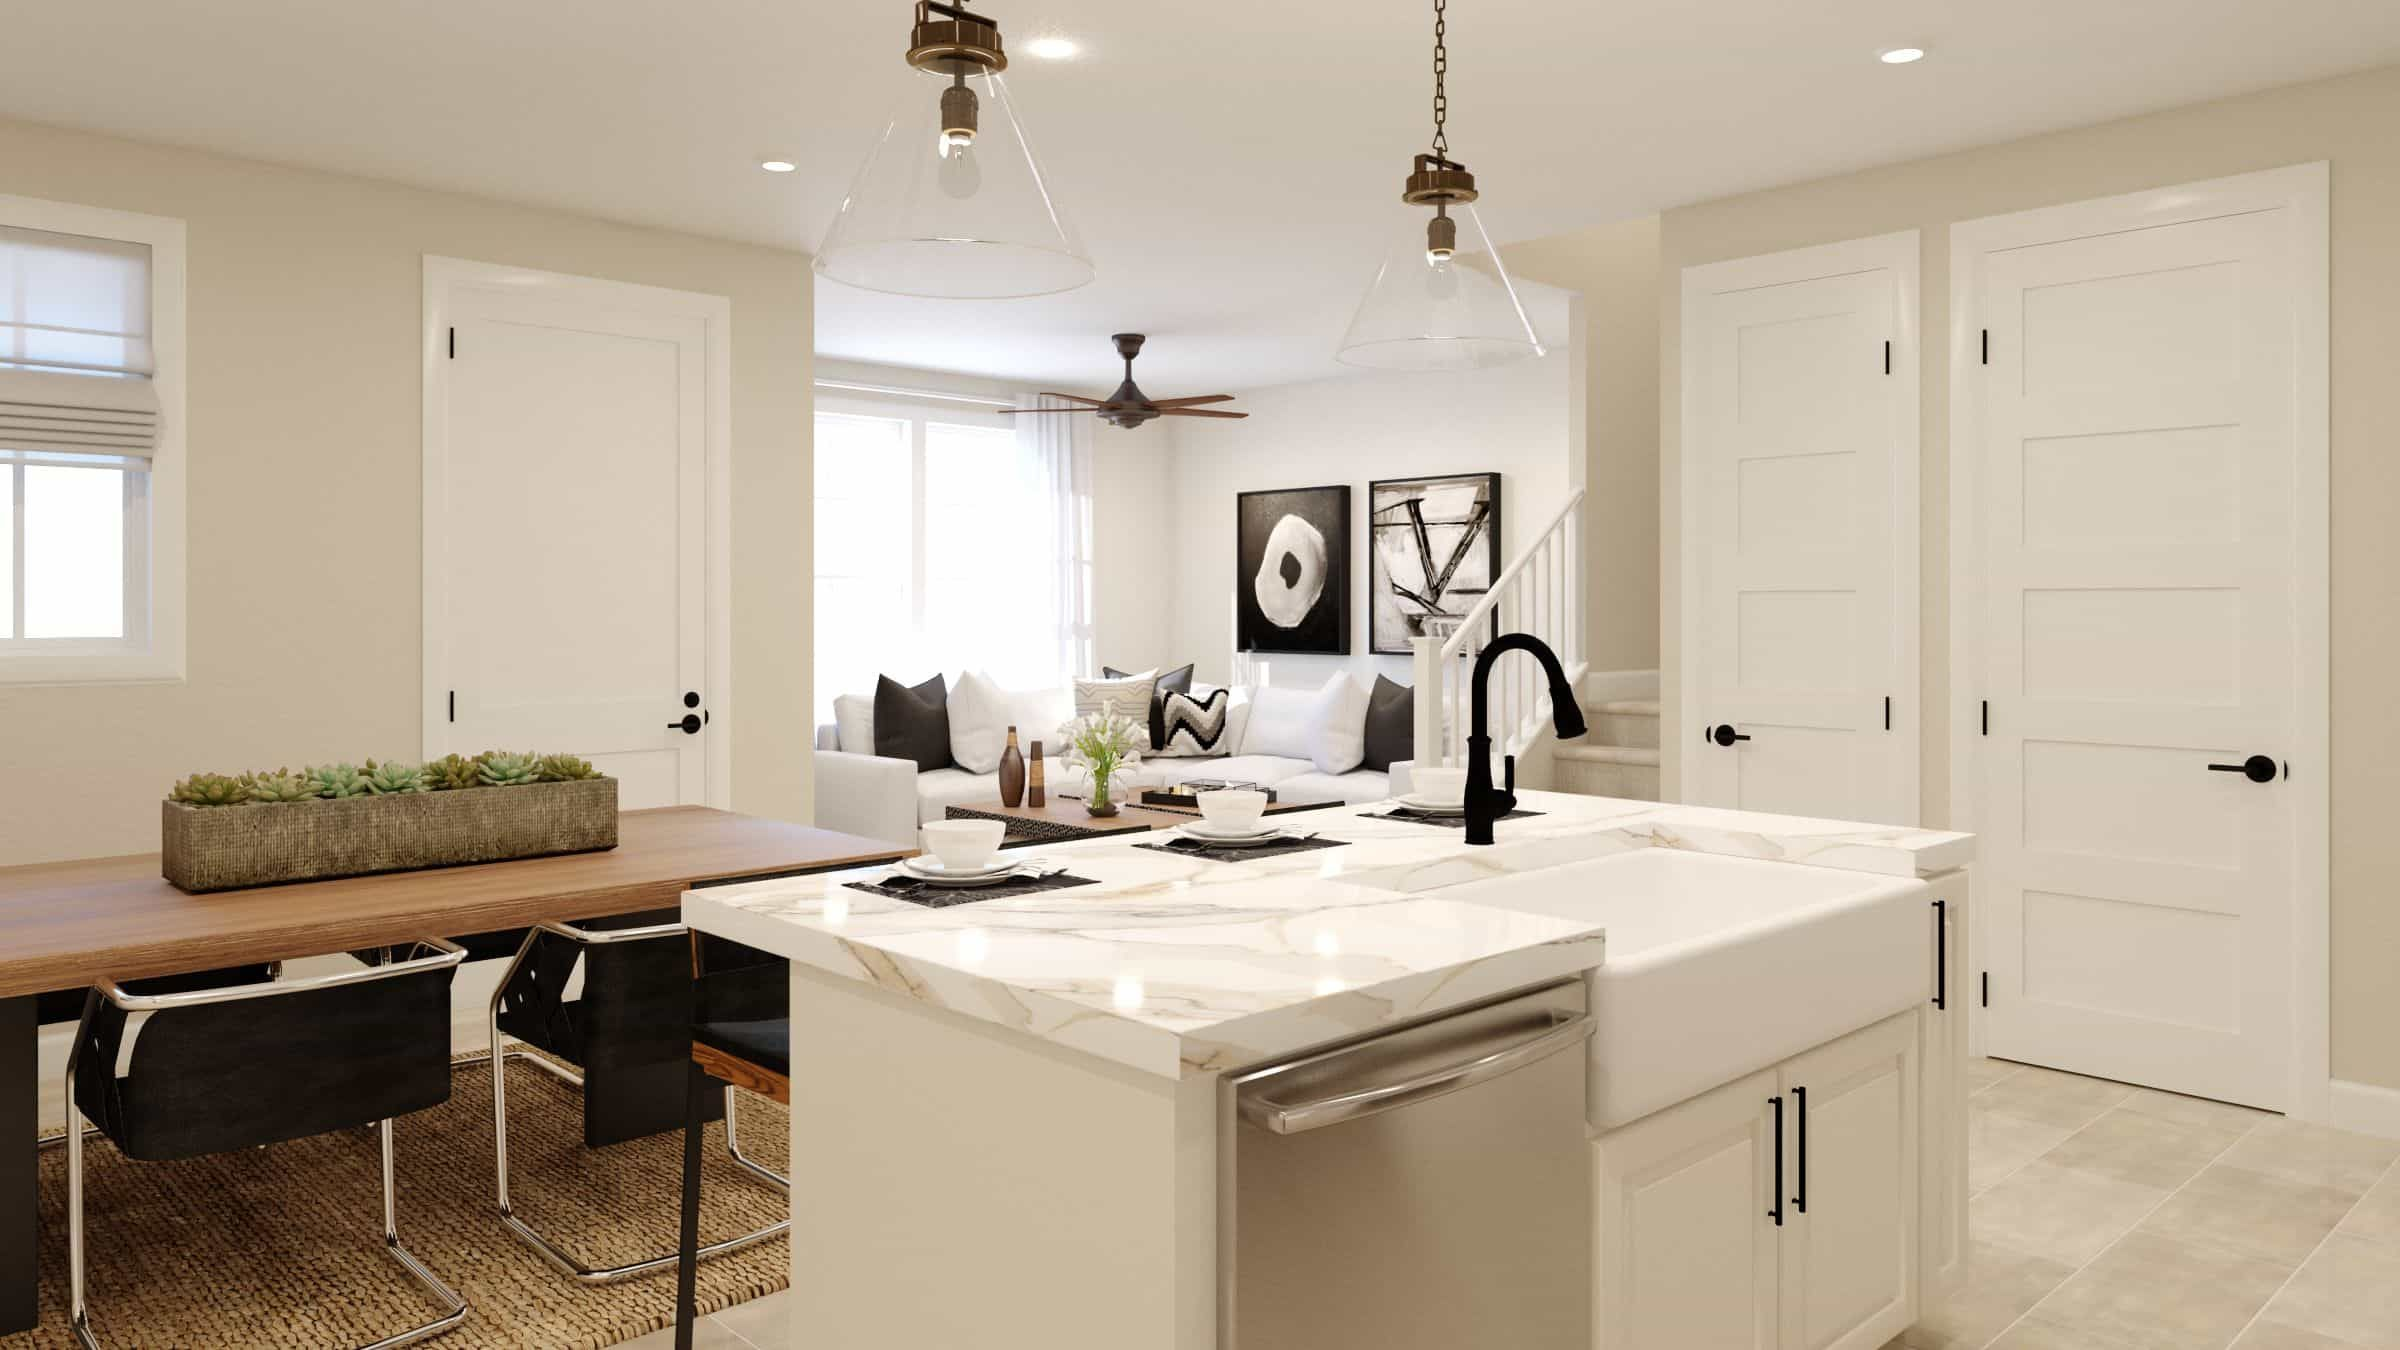 Kitchen featured in the Plan A By Tri Pointe Homes in Denver, CO